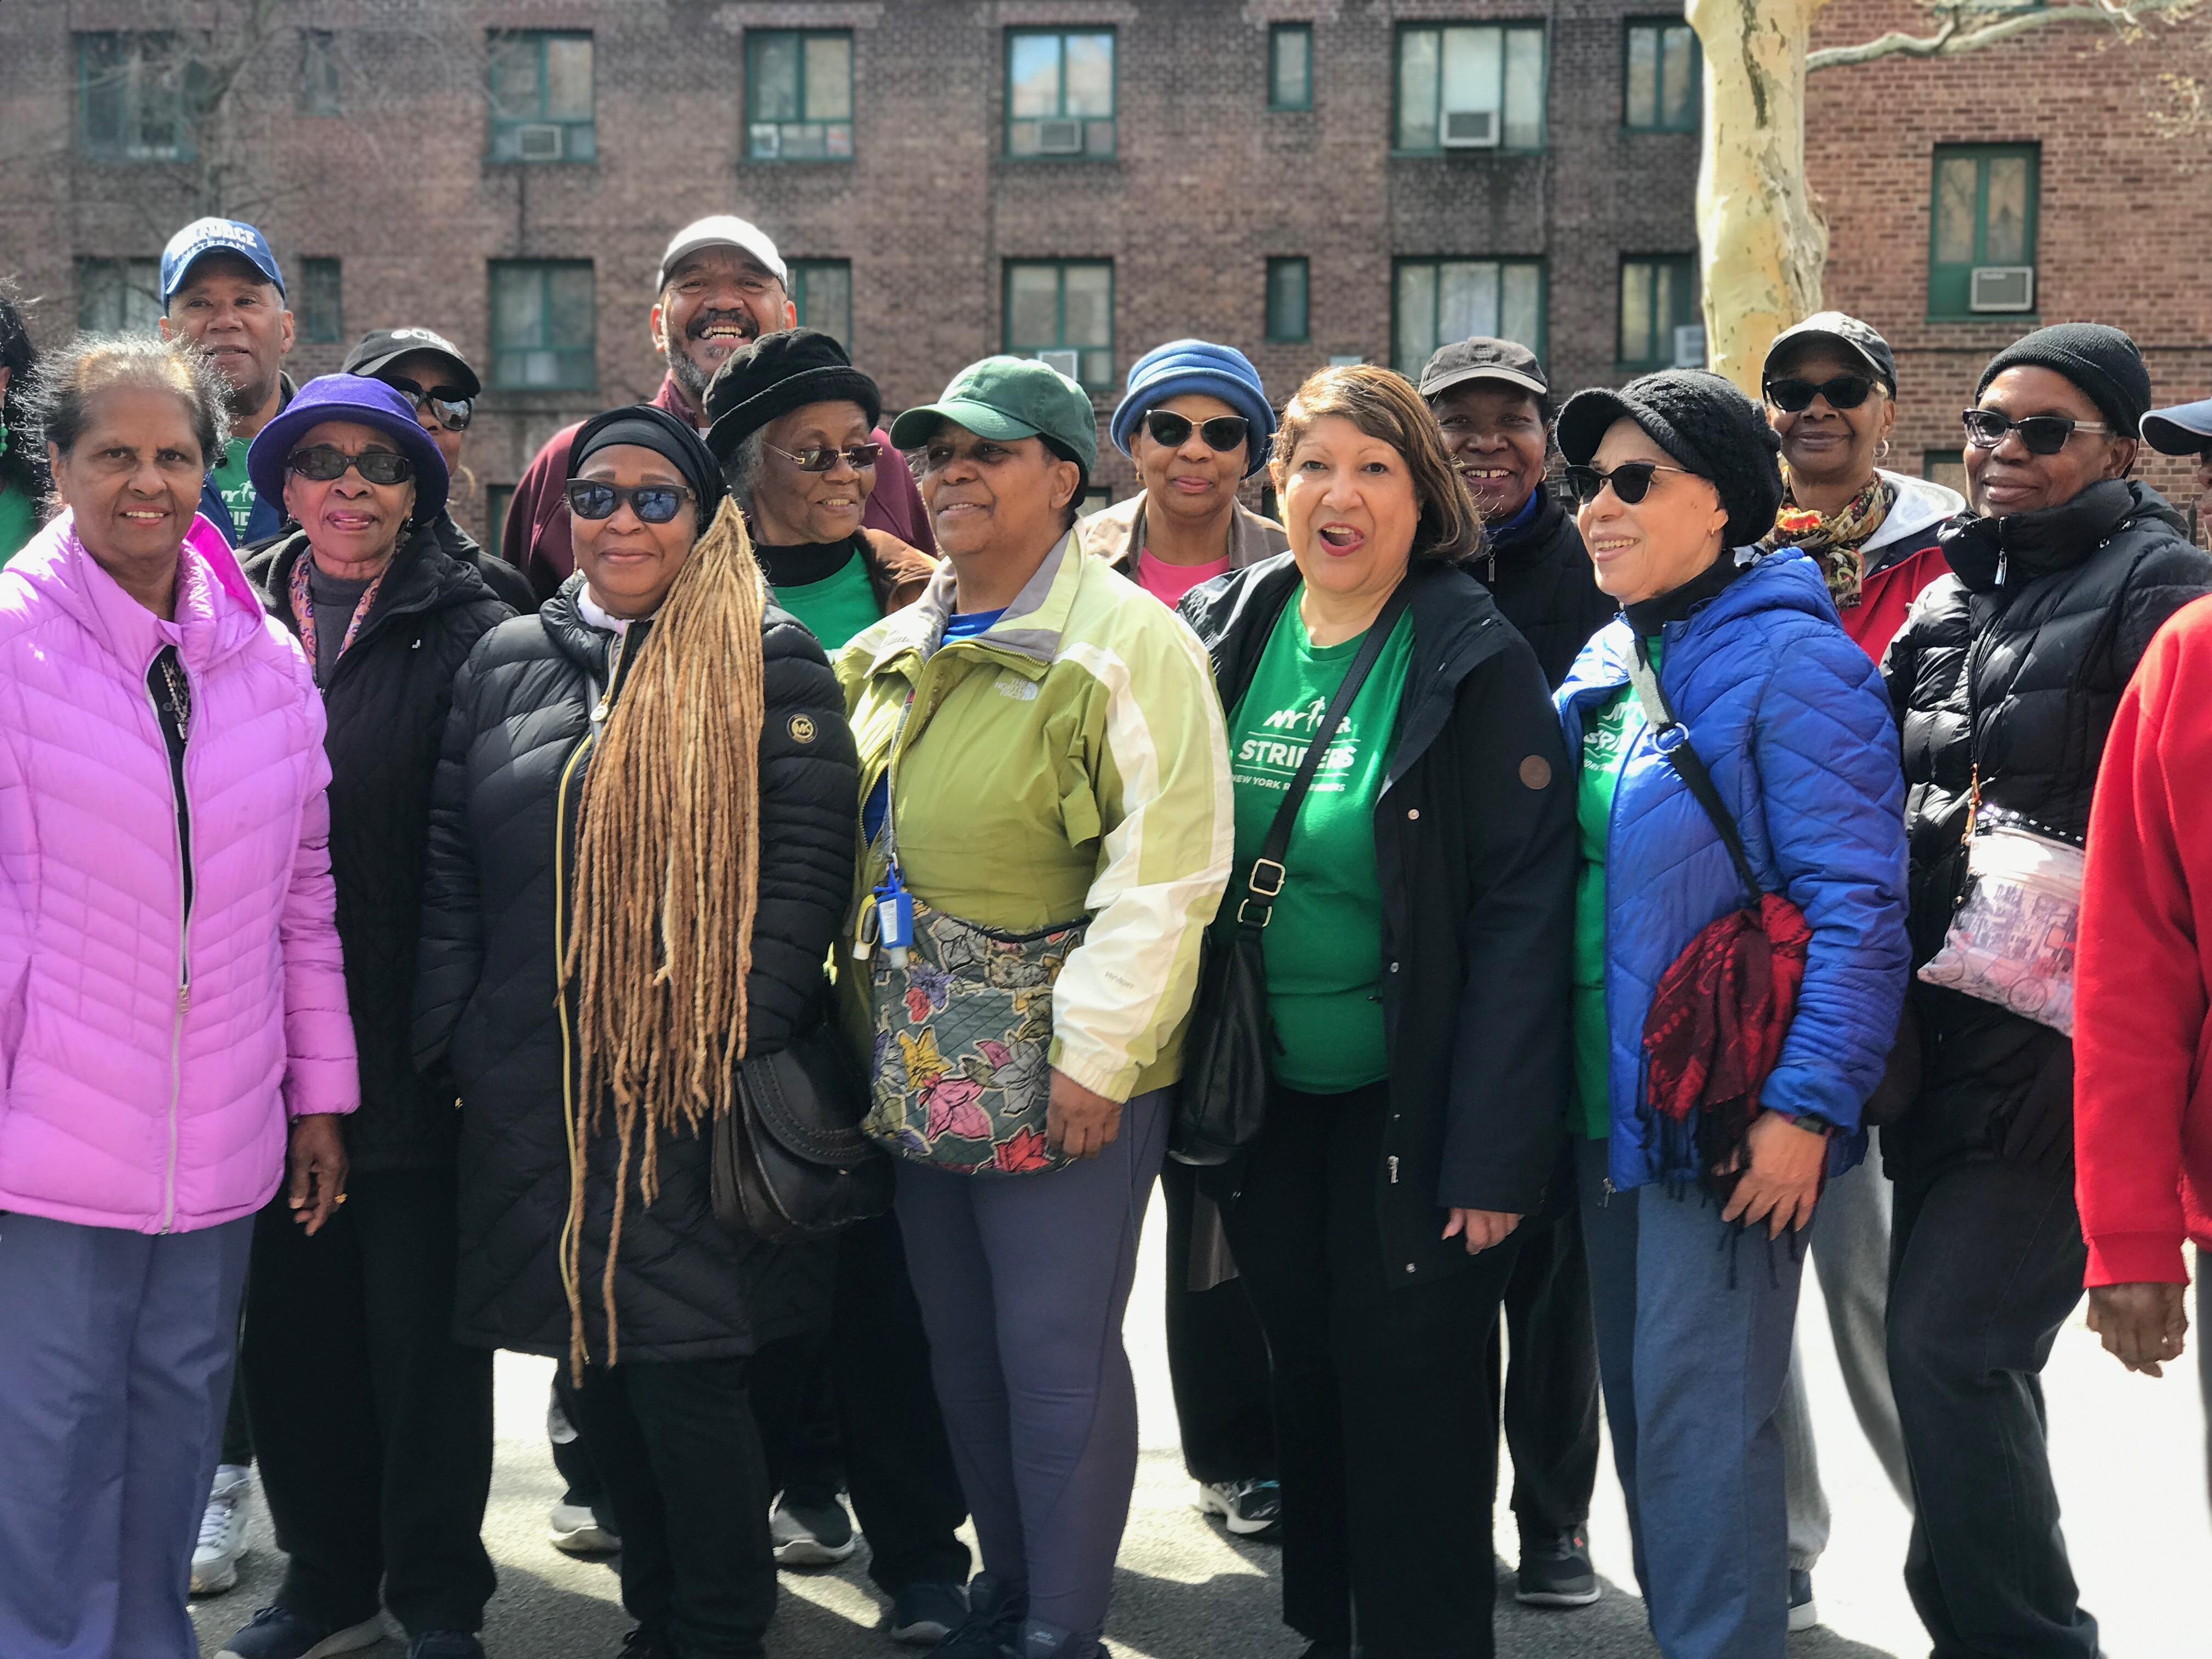 NYRR Striders group from Parkchester, the Bronx